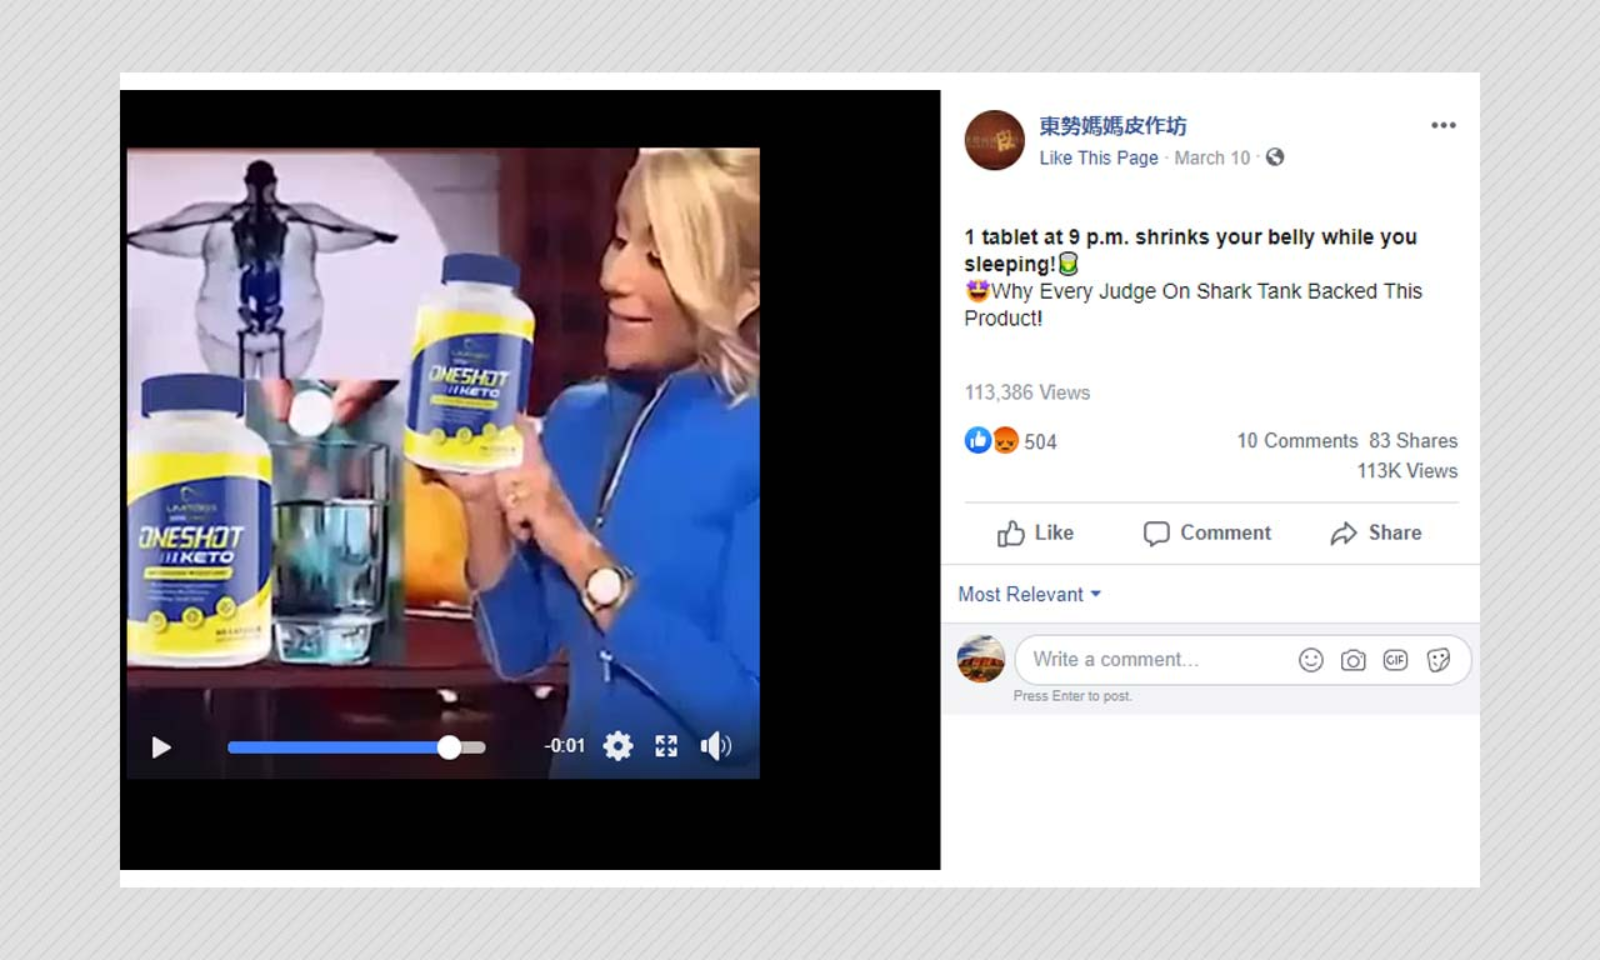 One Shot Keto Pill Not Endorsed By Shark Tank Judges